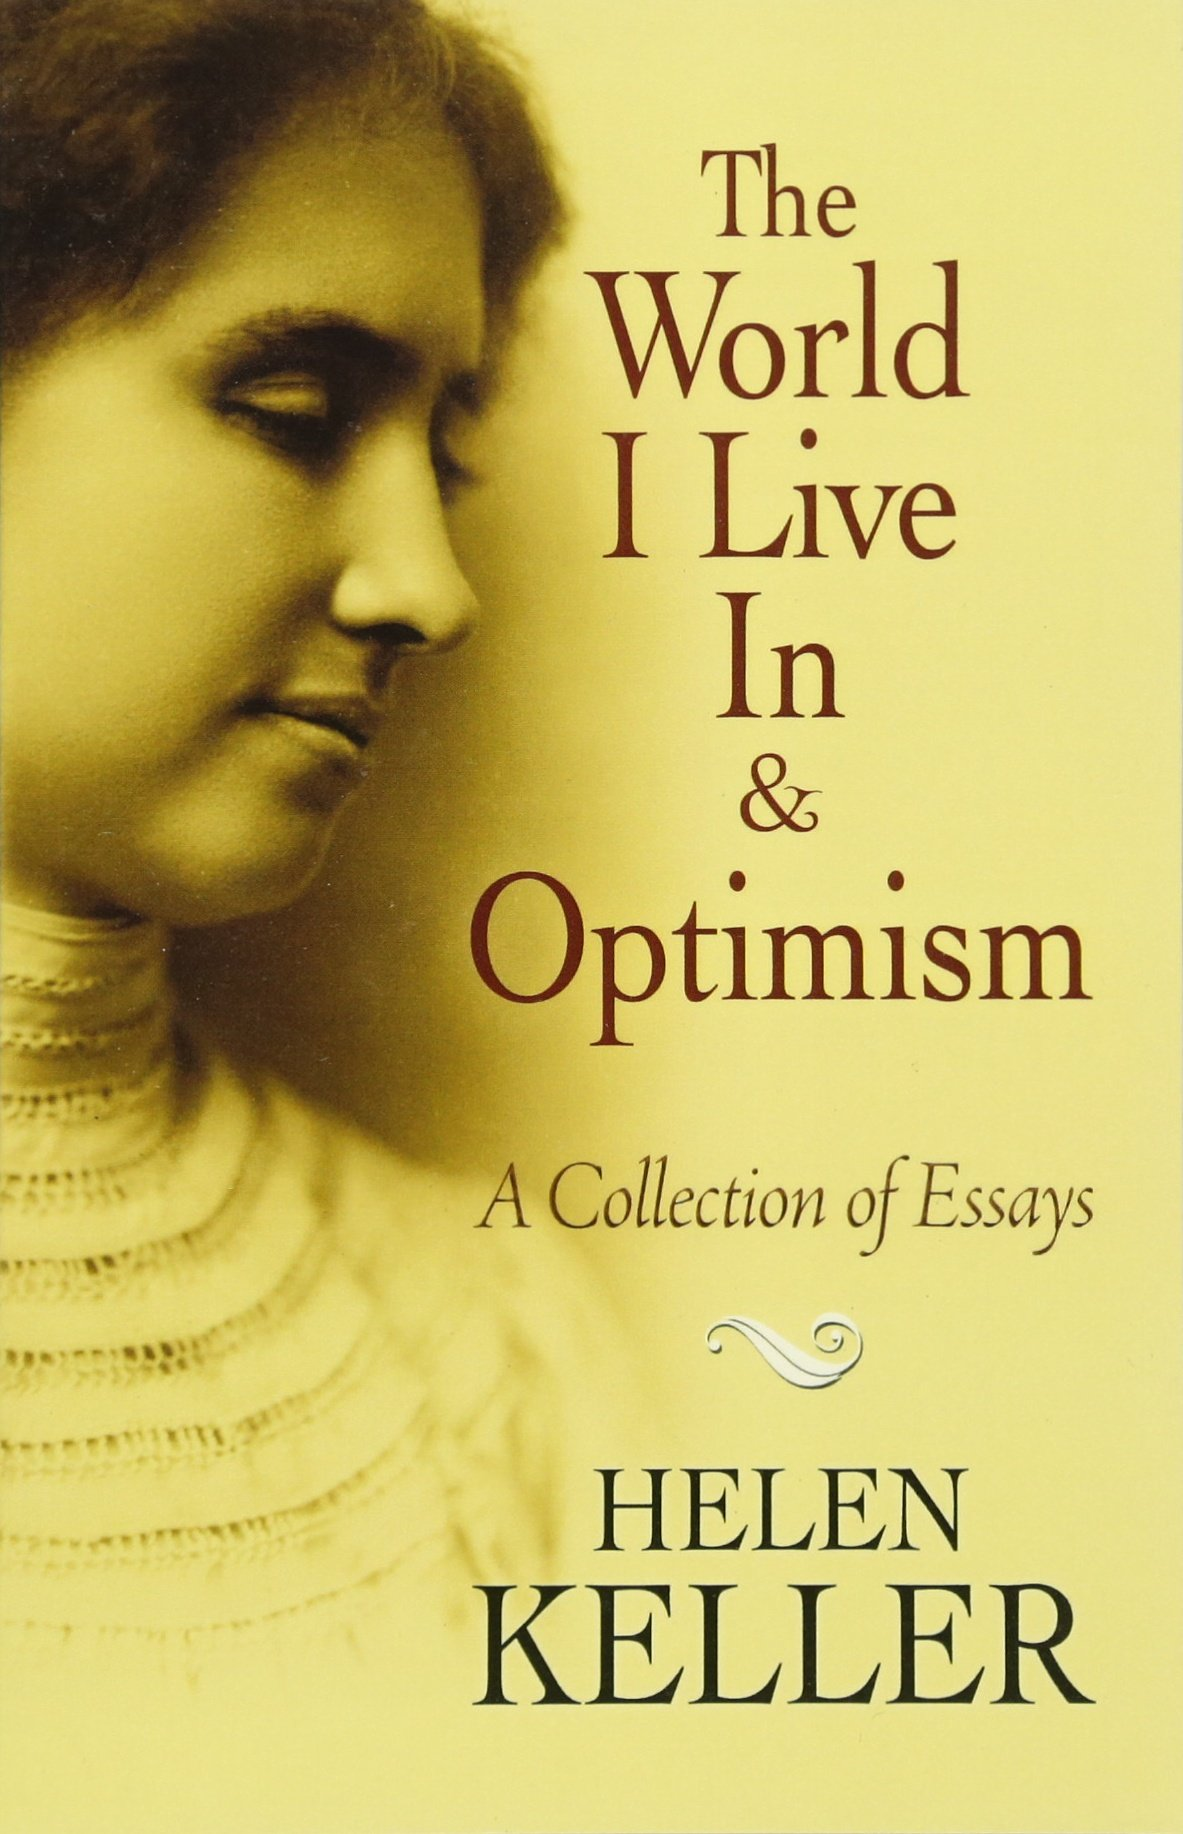 The World I Live In and Optimism: A Collection of Essays (Dover Books on Literature & Drama) pdf epub